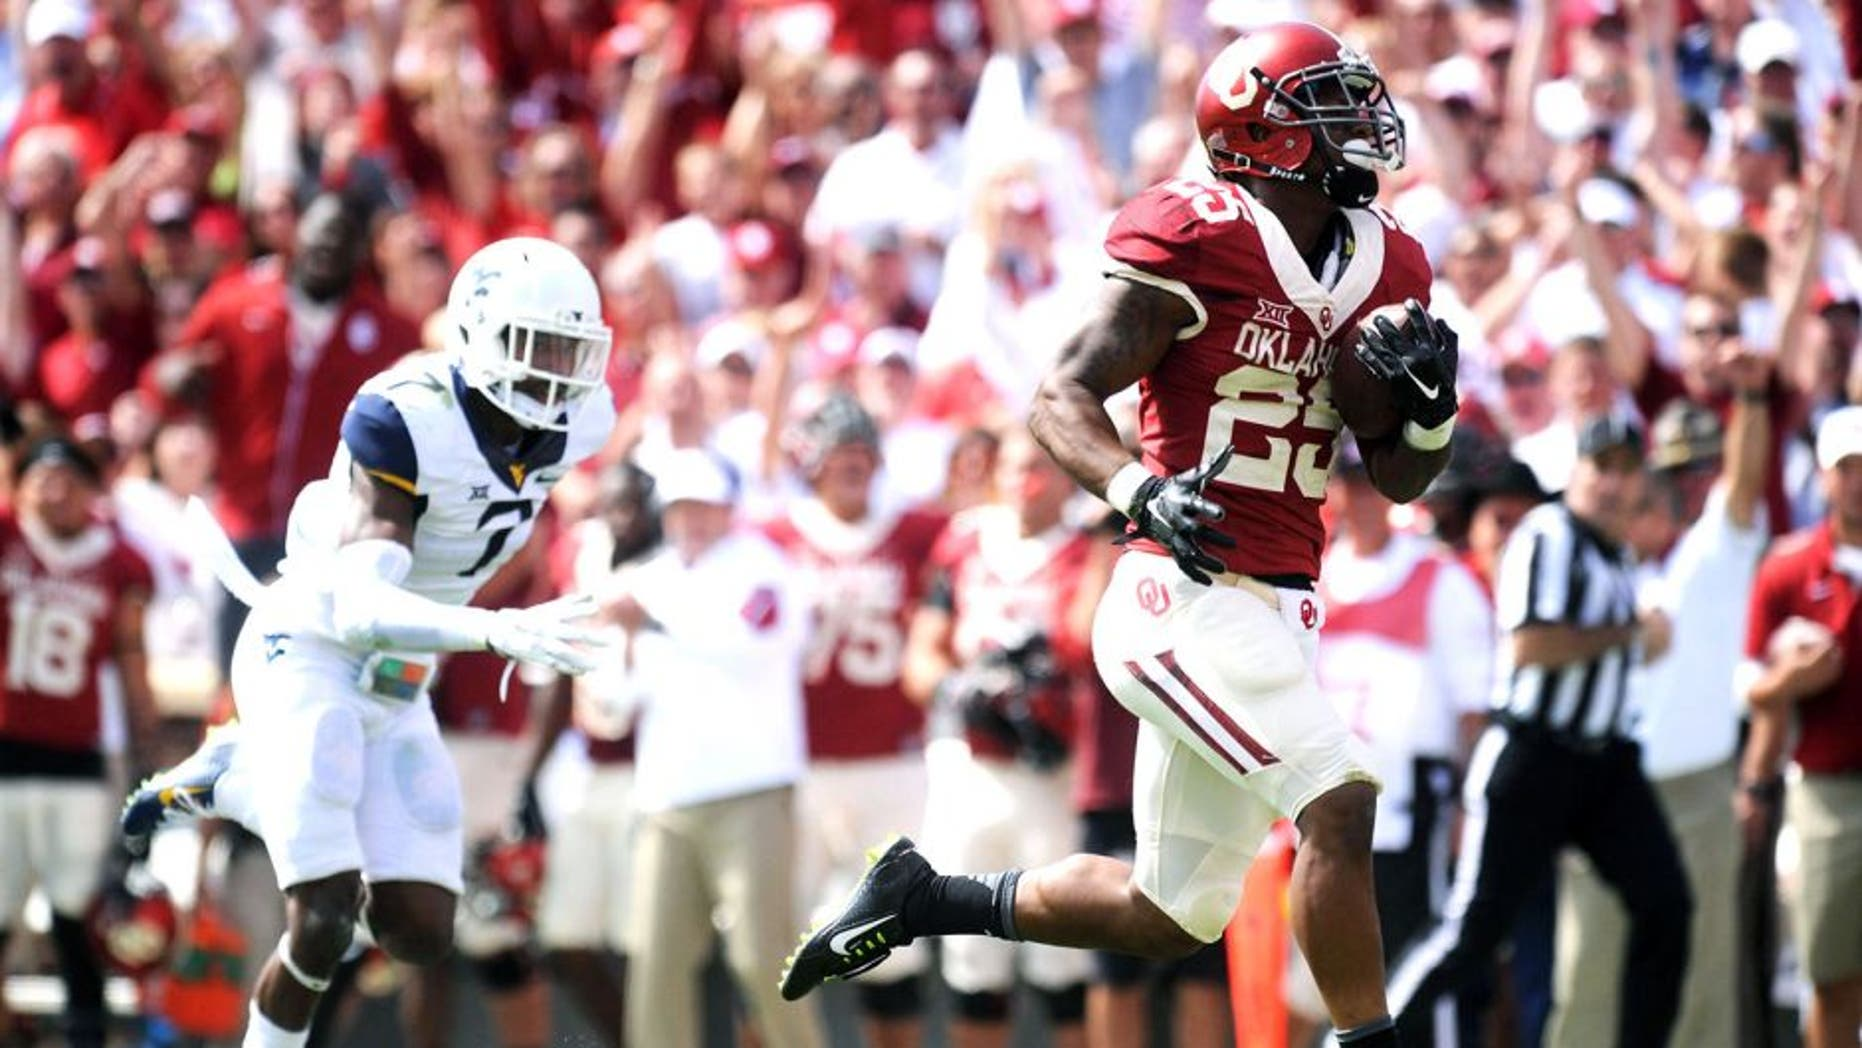 Oct 3, 2015; Norman, OK, USA; Oklahoma Sooners running back Joe Mixon (25) runs for a touchdown against the West Virginia Mountaineers in the second quarter at Gaylord Family - Oklahoma Memorial Stadium. Mandatory Credit: Mark D. Smith-USA TODAY Sports